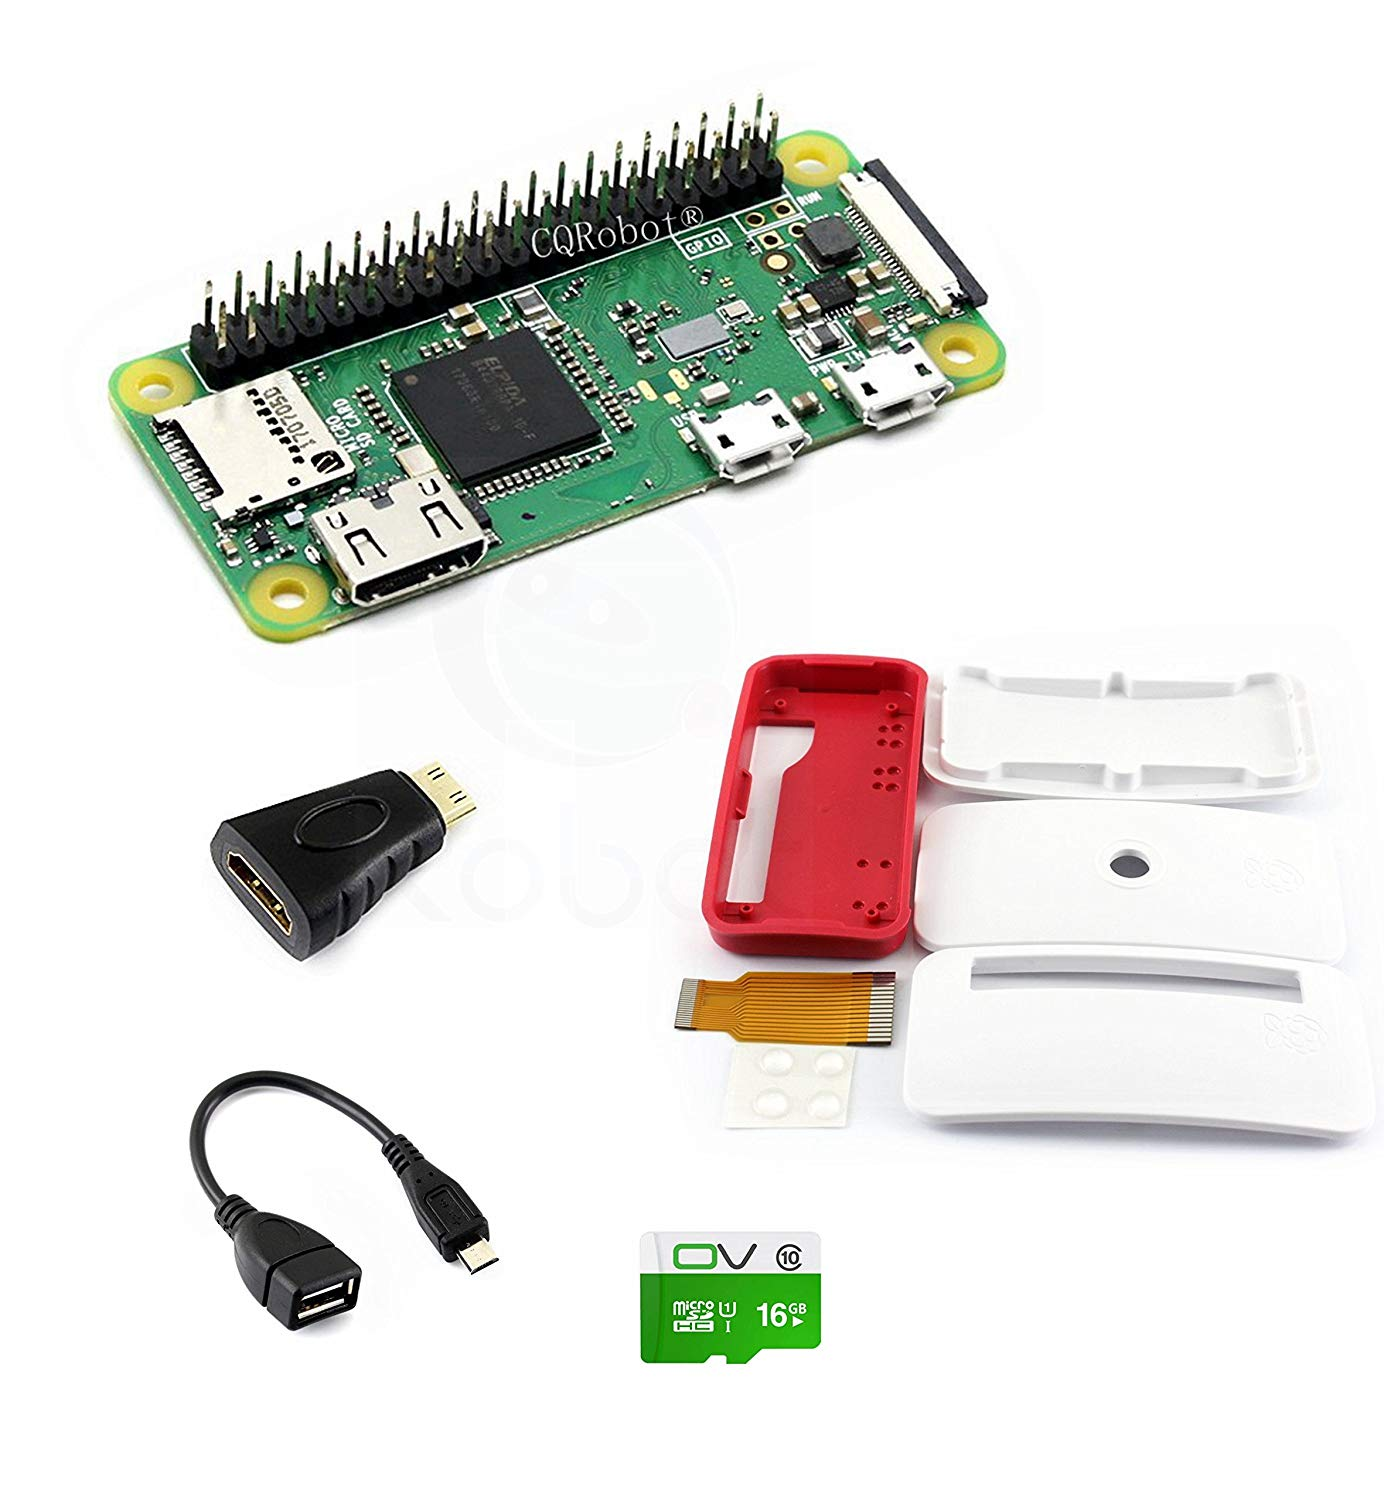 CQRobot Kit B with Official Case for Raspberry Pi Zero WH, Includes: Raspberry Pi Zero WH (Built-in WiFi) Micro SD Card, Mini HDMI to HDMI Adapter, Micro USB OTG Cable and Components.